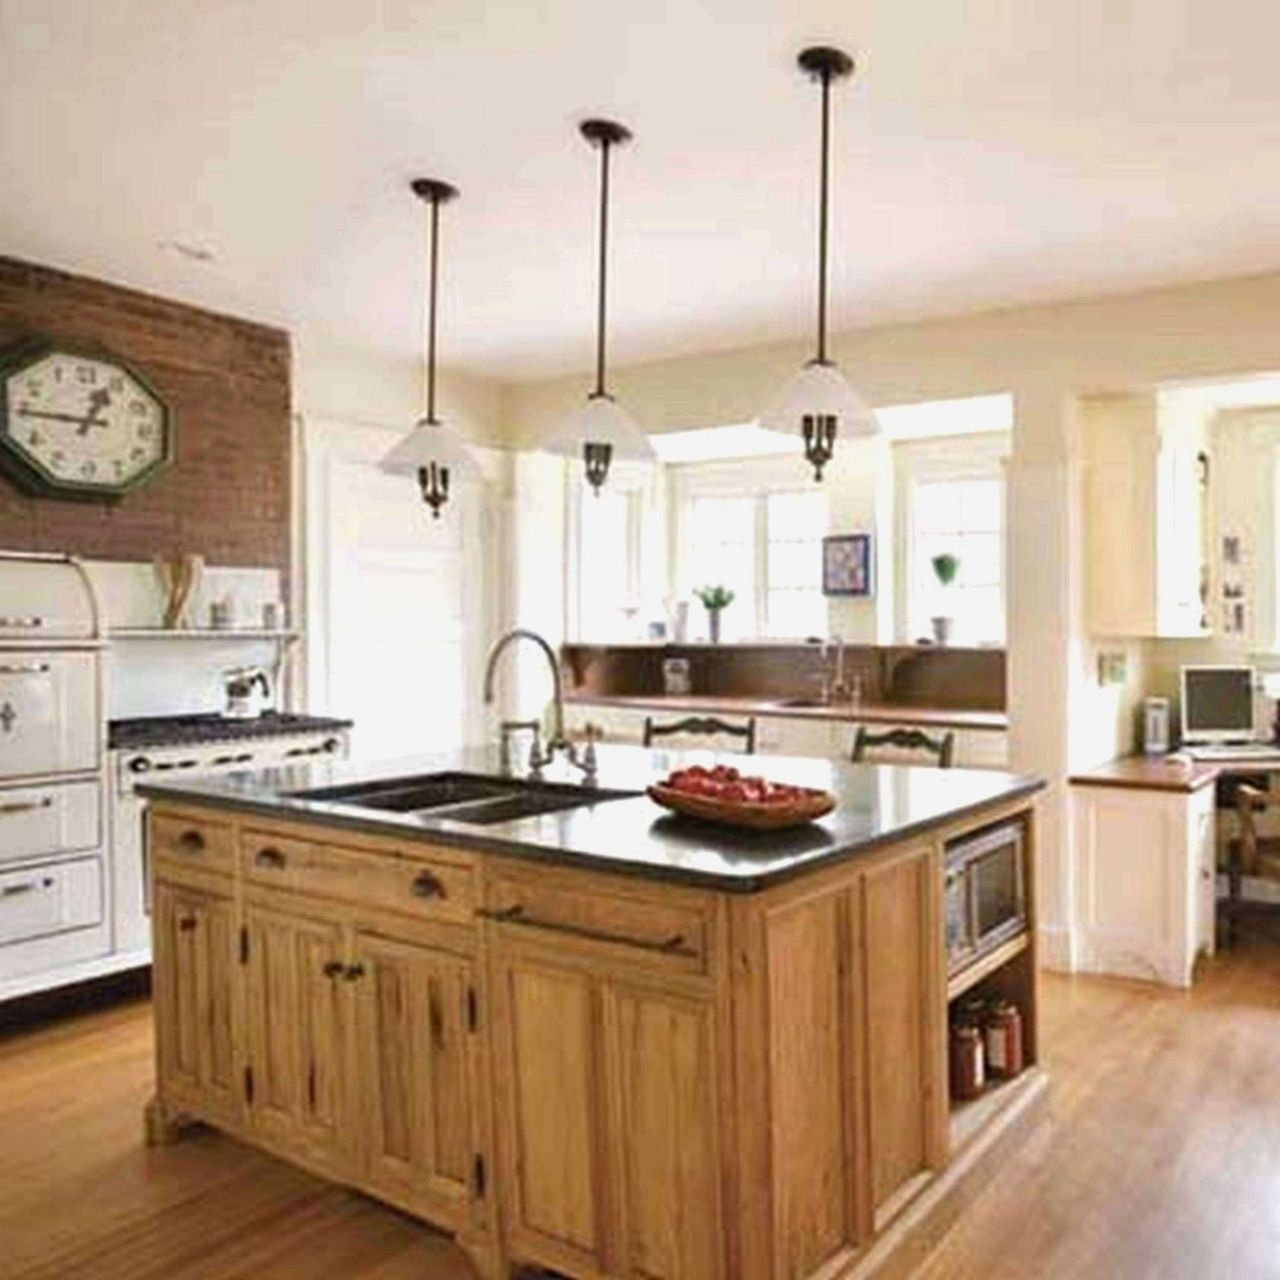 Replace Kitchen Flooring without Removing Cabinets in 2020 ...